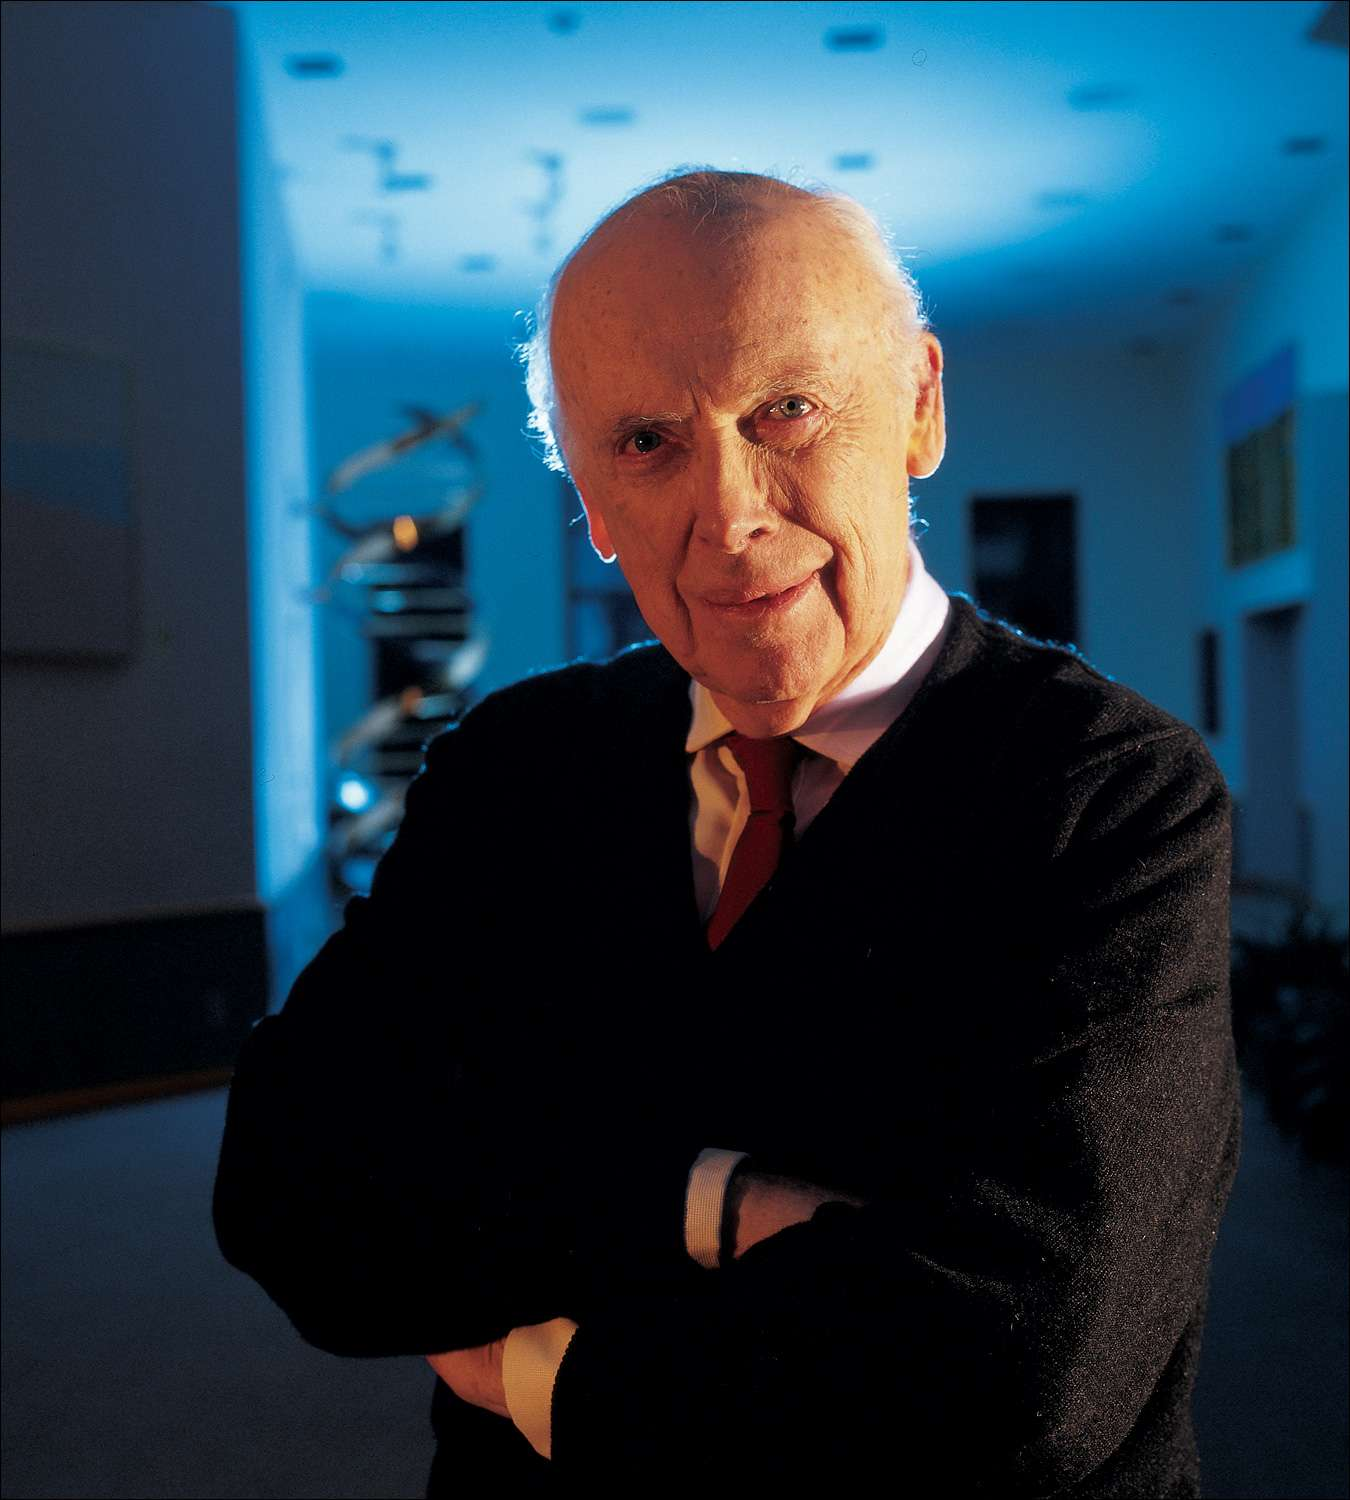 James Watson, le co-découvreur de la structure de l'ADN. Crédit : University of Arkansas